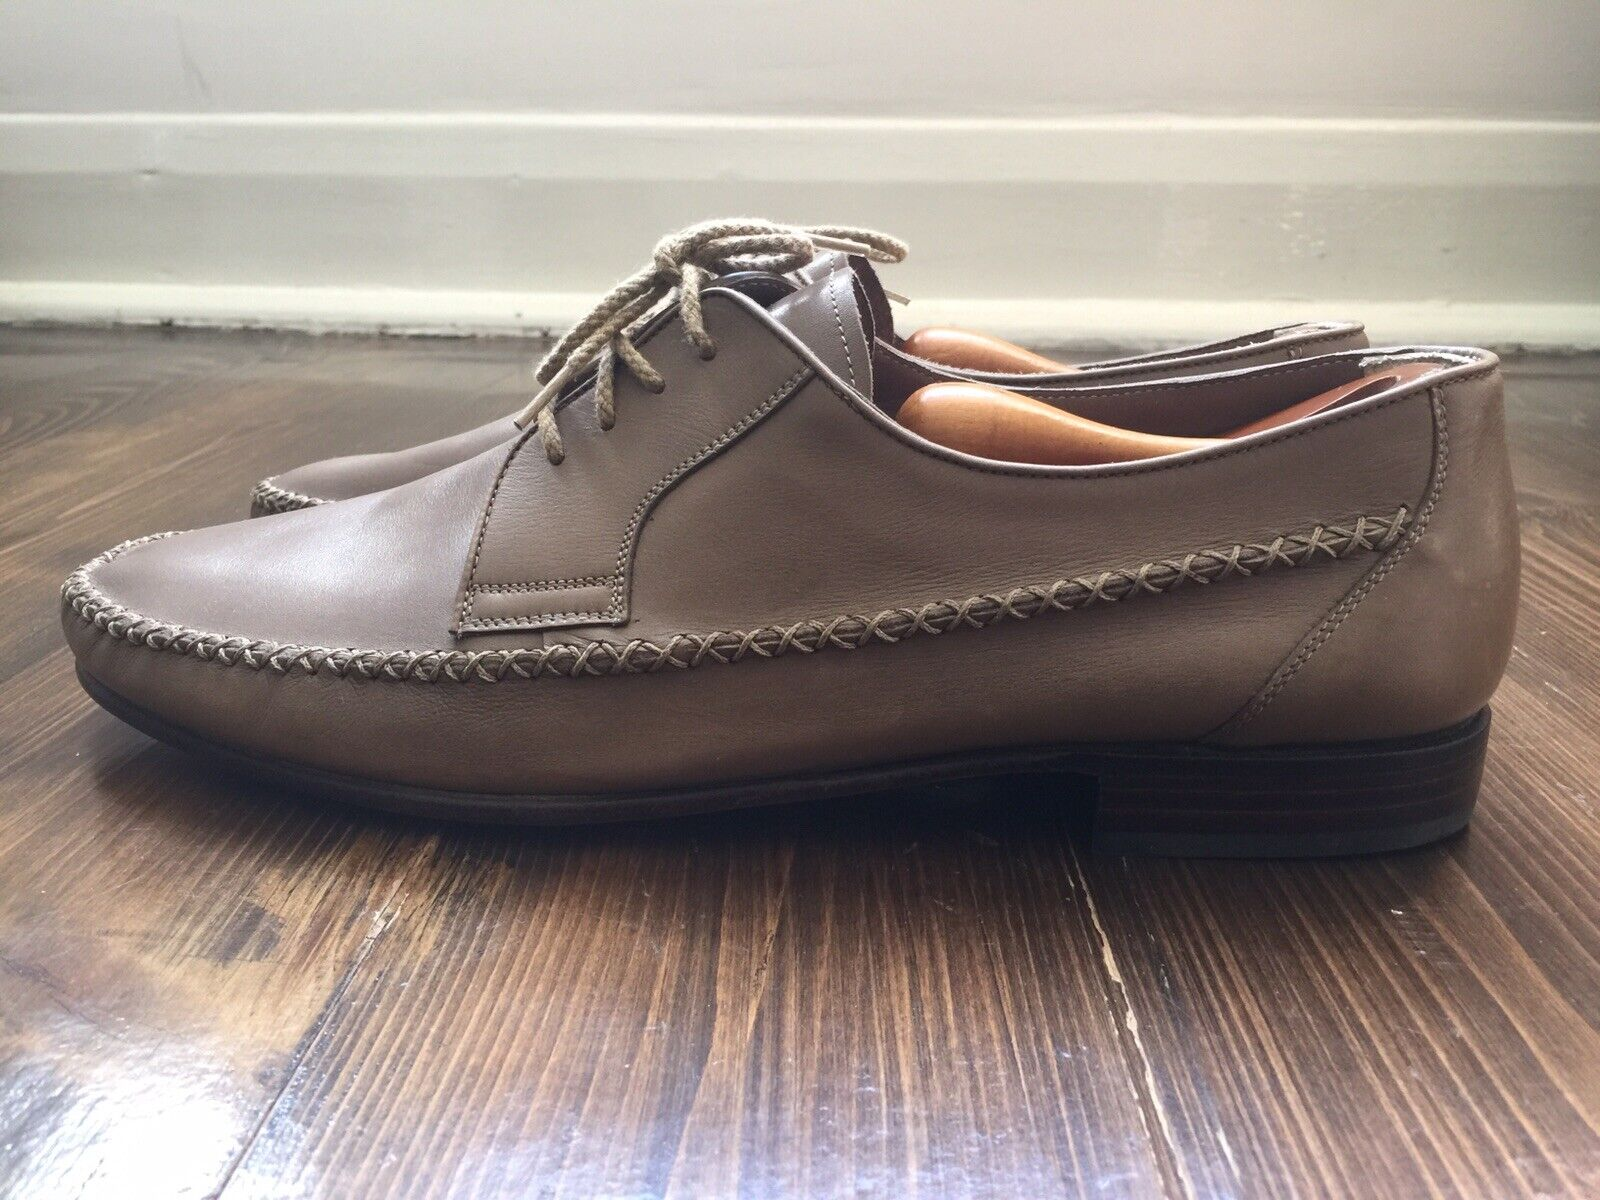 Vintage Bally Beverino Men's Lace Up Derby shoes In Taupe Size 11 Leather Sole